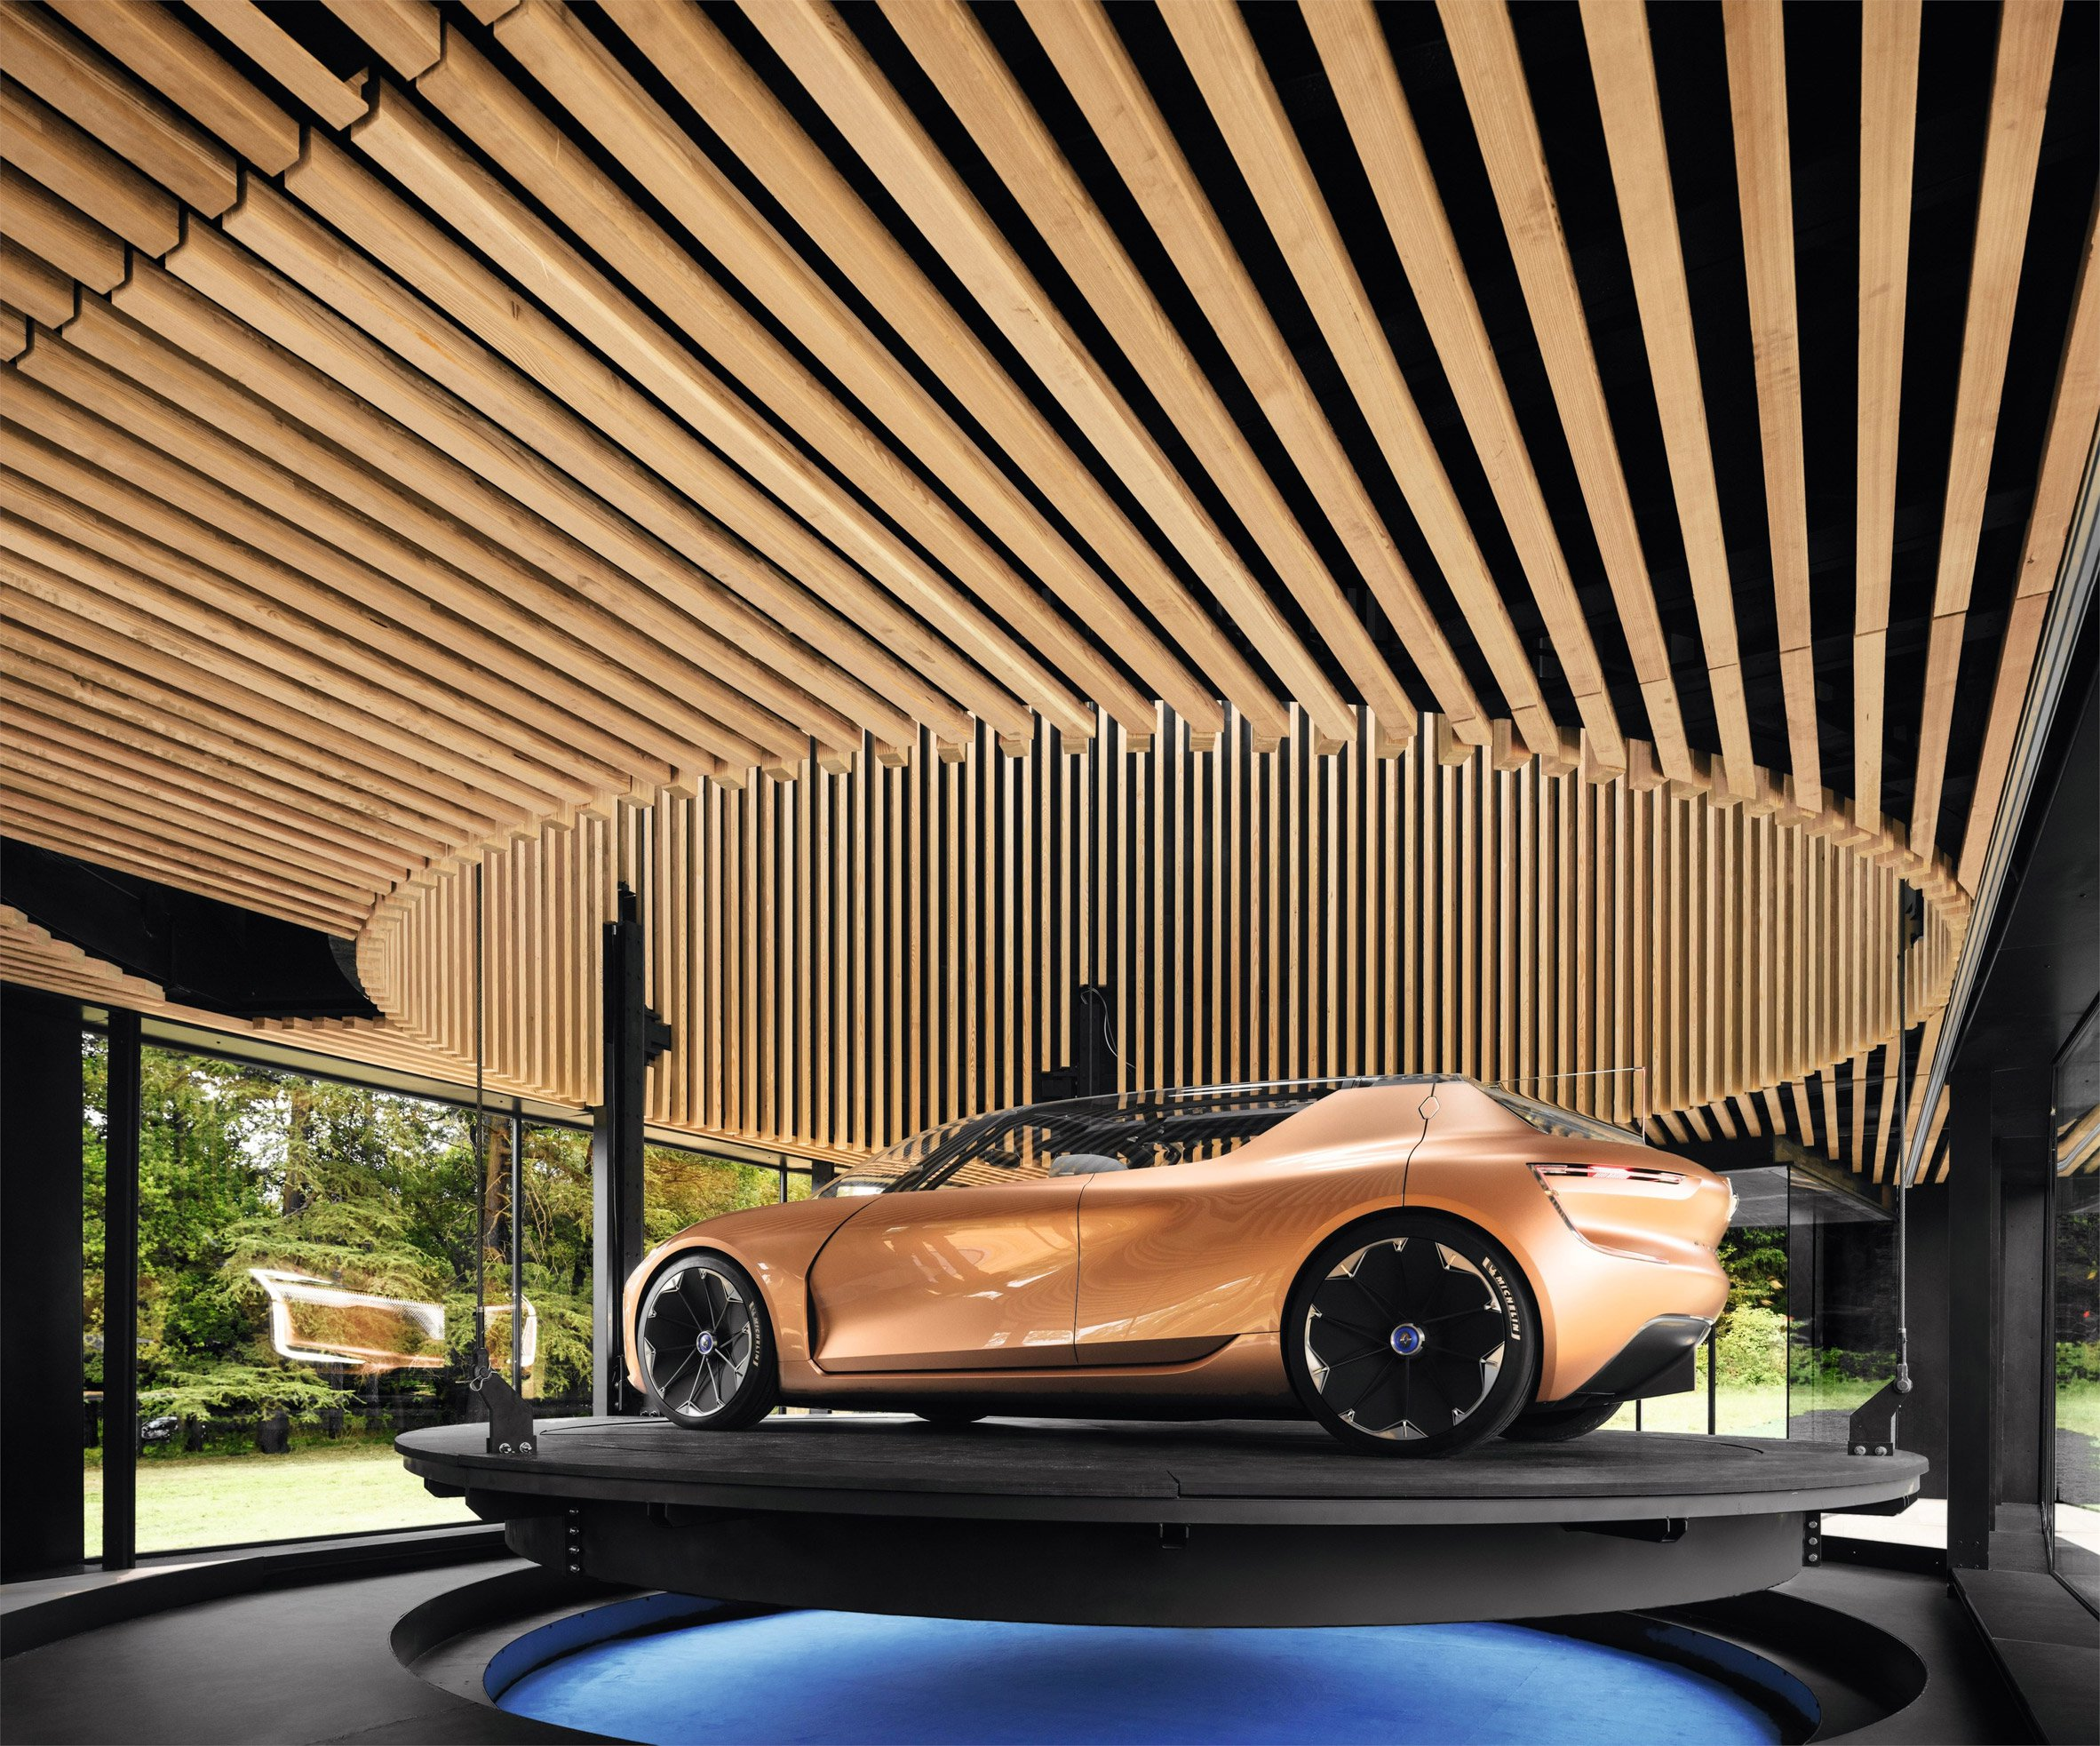 renault symbioz electric car concept doubles as a spare room curbed. Black Bedroom Furniture Sets. Home Design Ideas